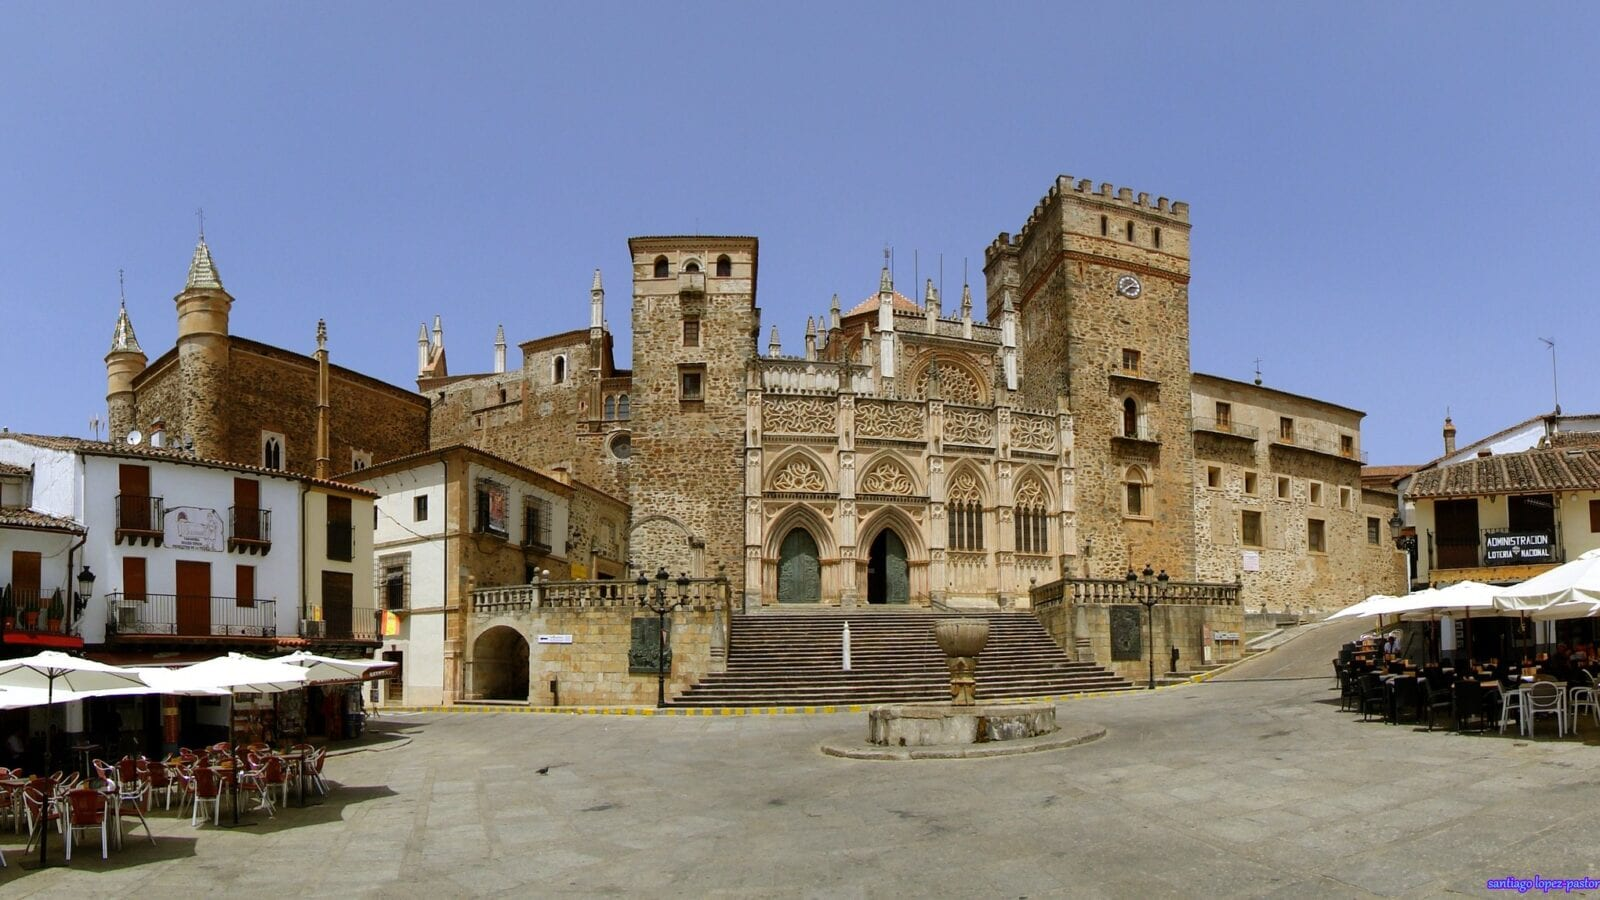 Monastery of Guadalupe in Extremadura